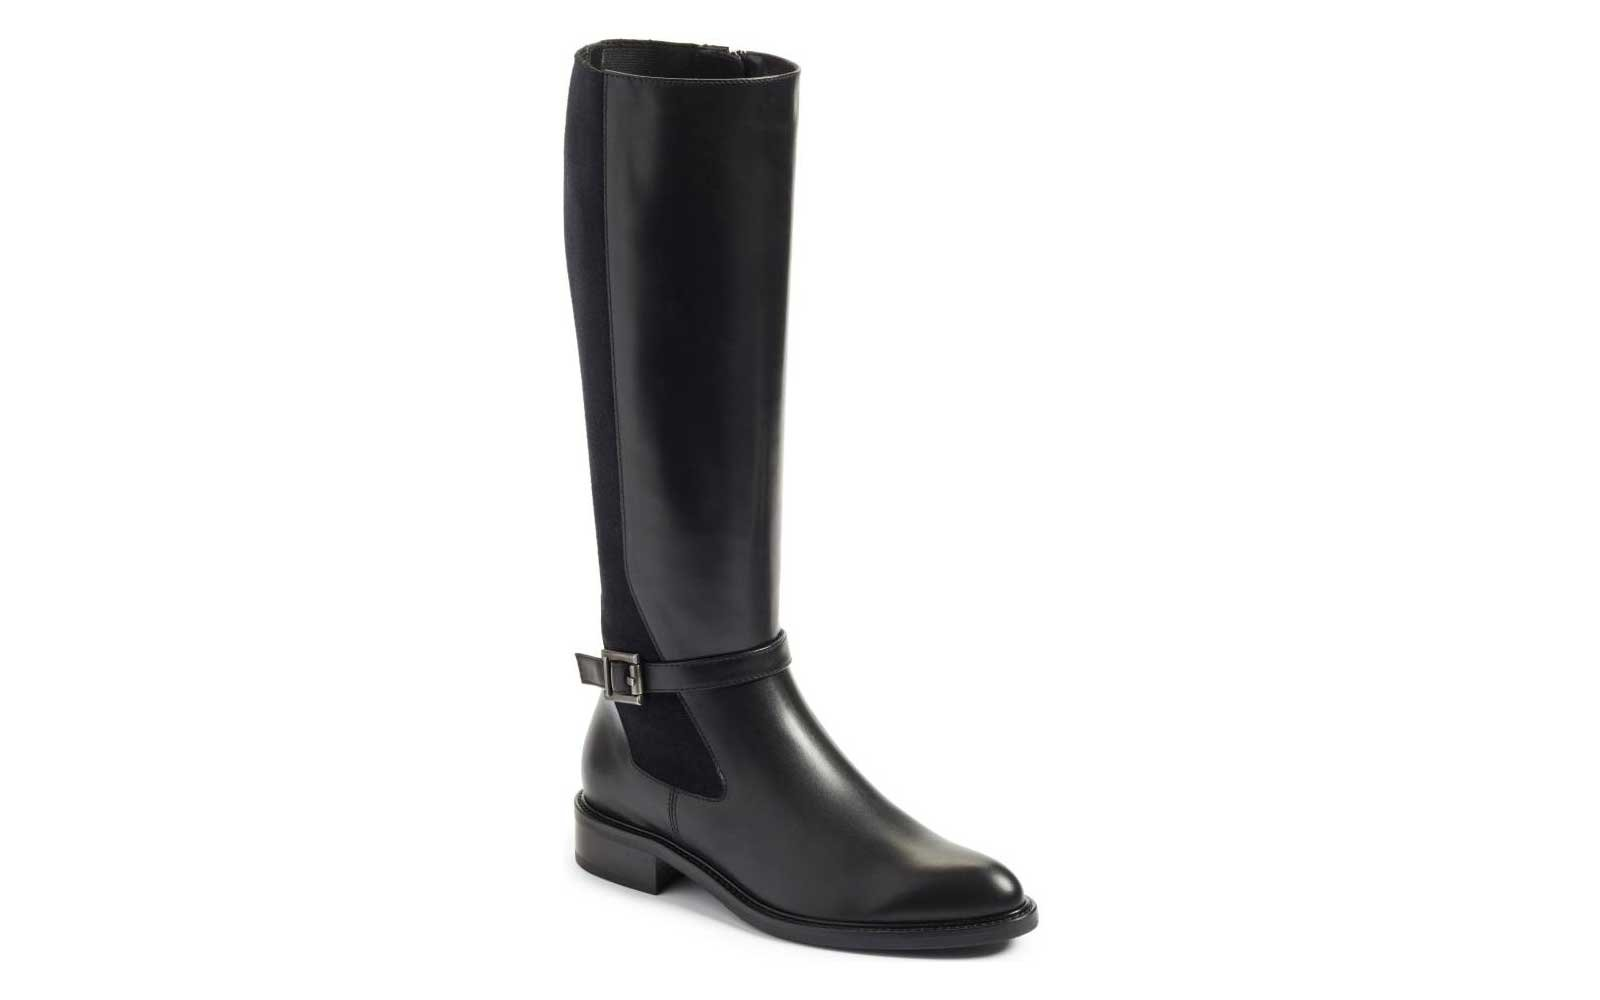 Aquatalia weatherproof boot